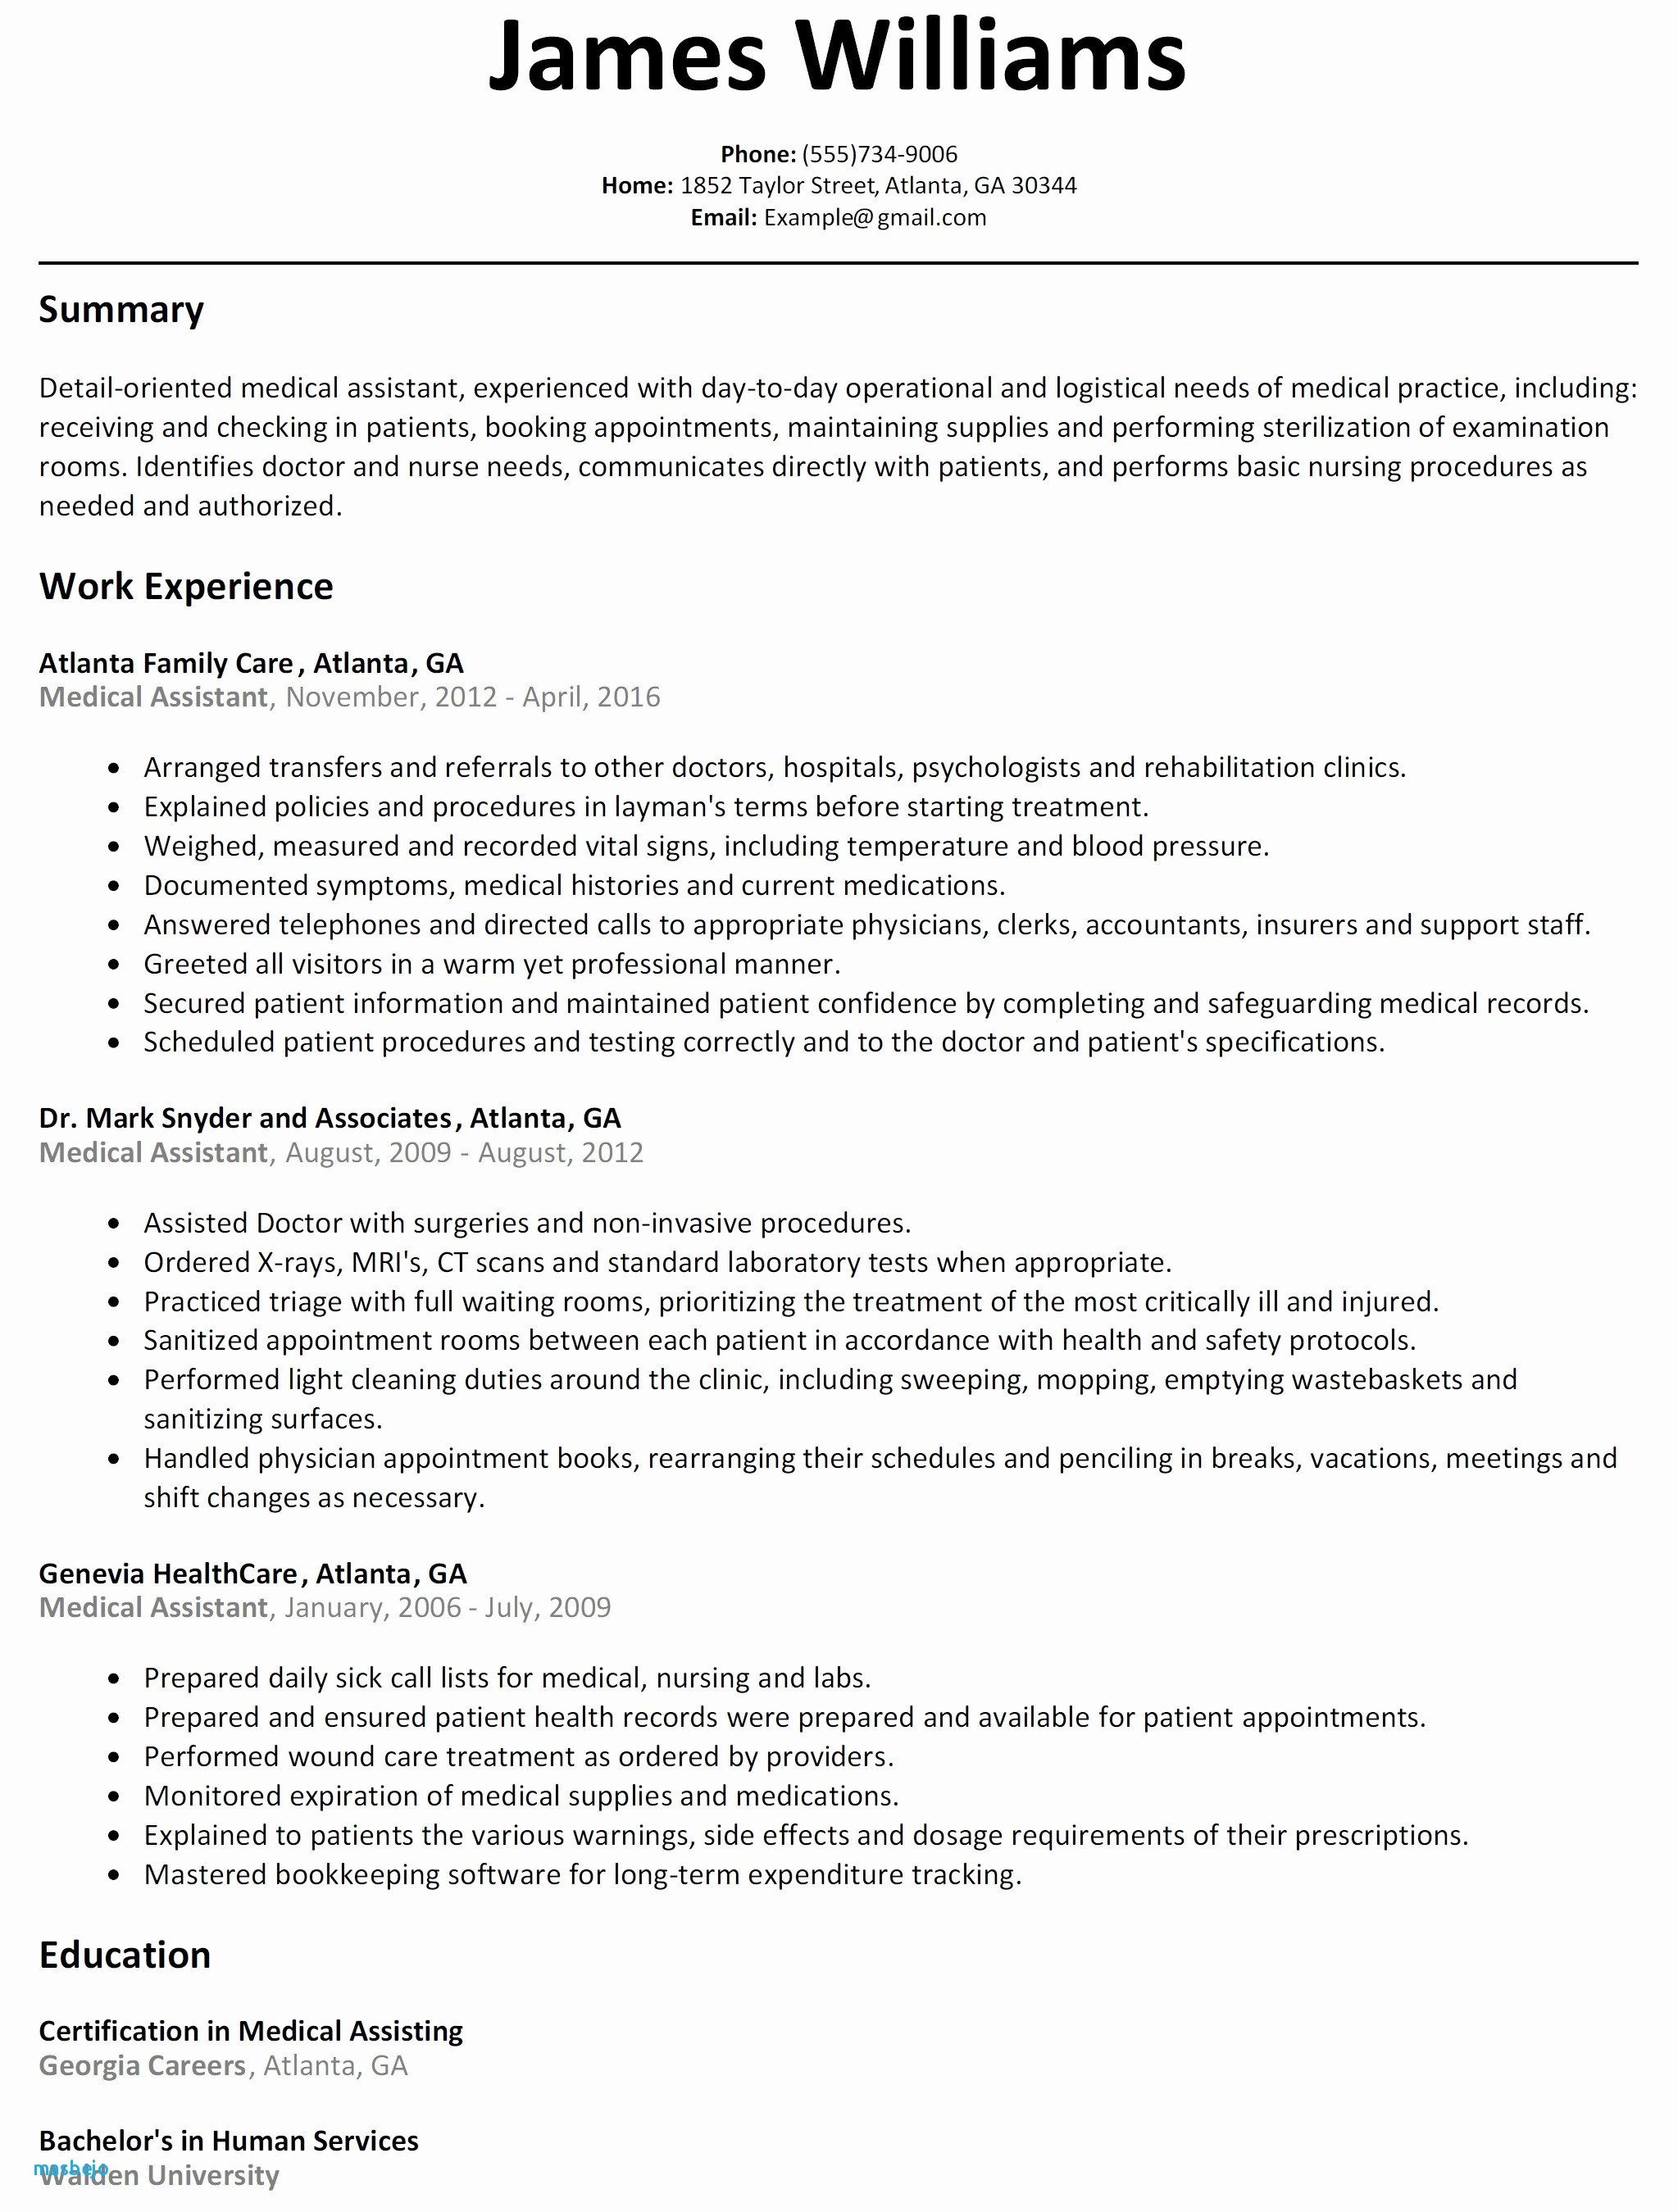 Medical Office Manager Resume Template - Free Certified Medical assistant Resume Samples Resume Resume